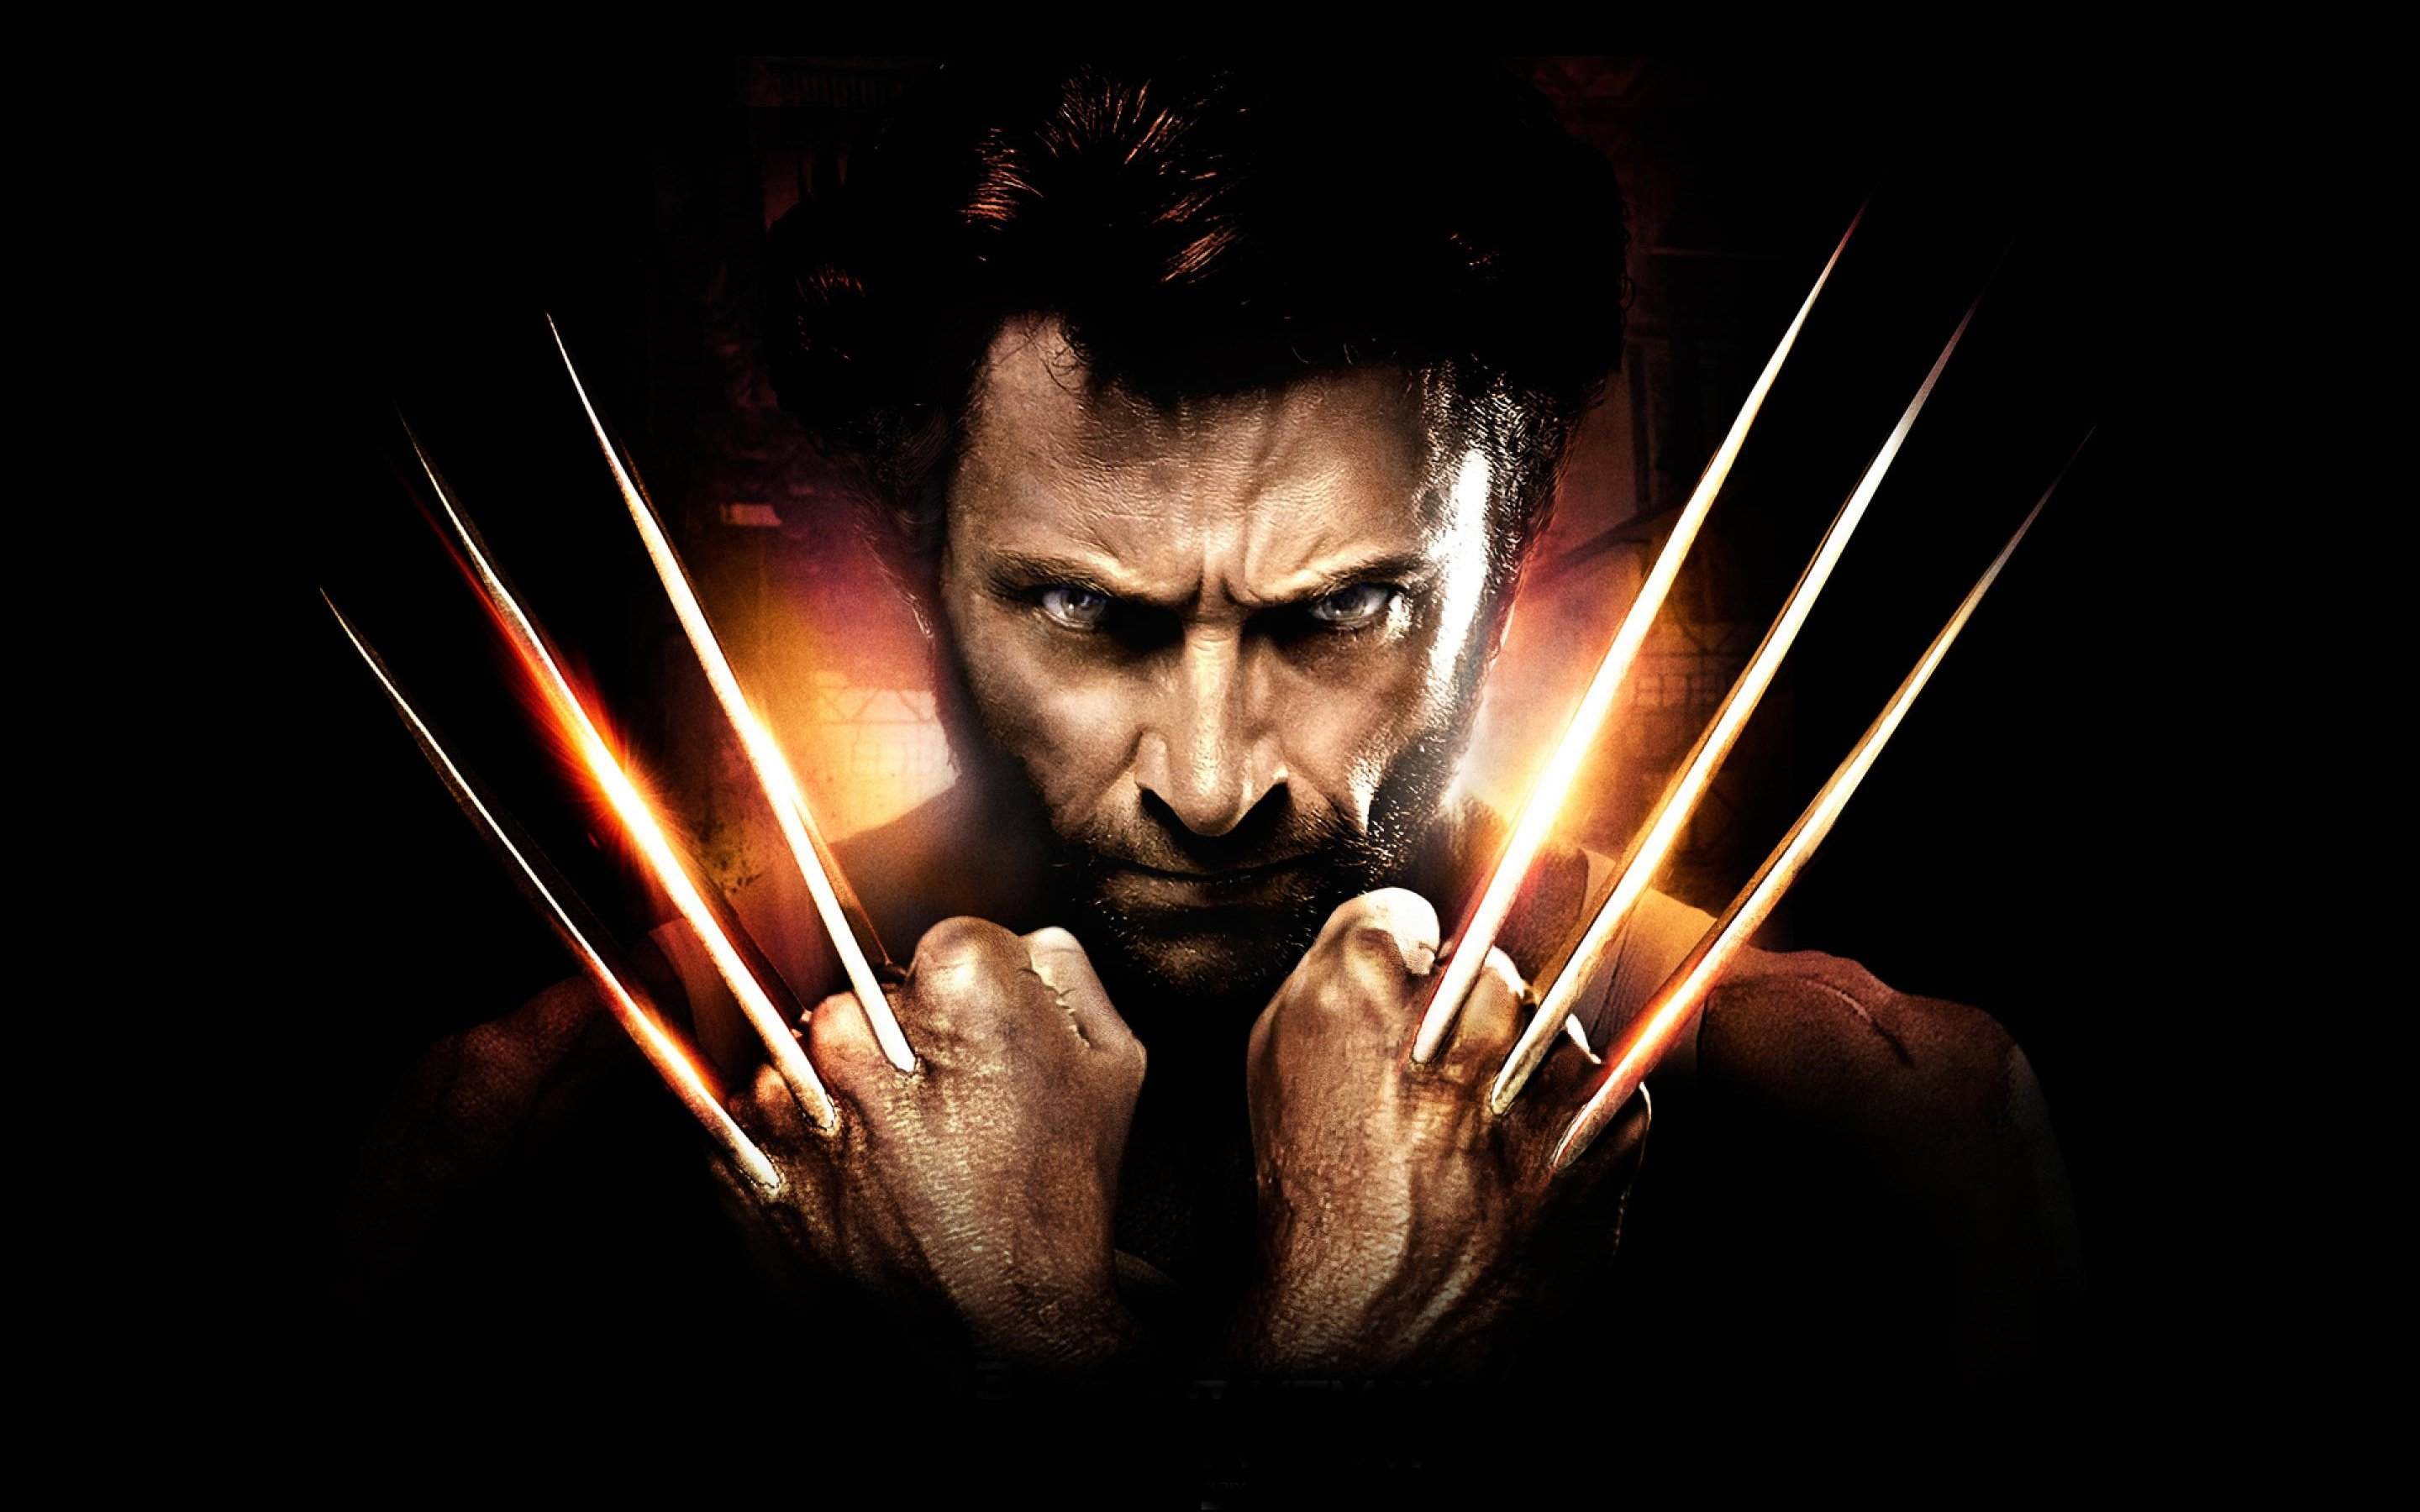 This Set Of DIY Wolverine Claws Looks Amazing But Not So Safe 2880x1800